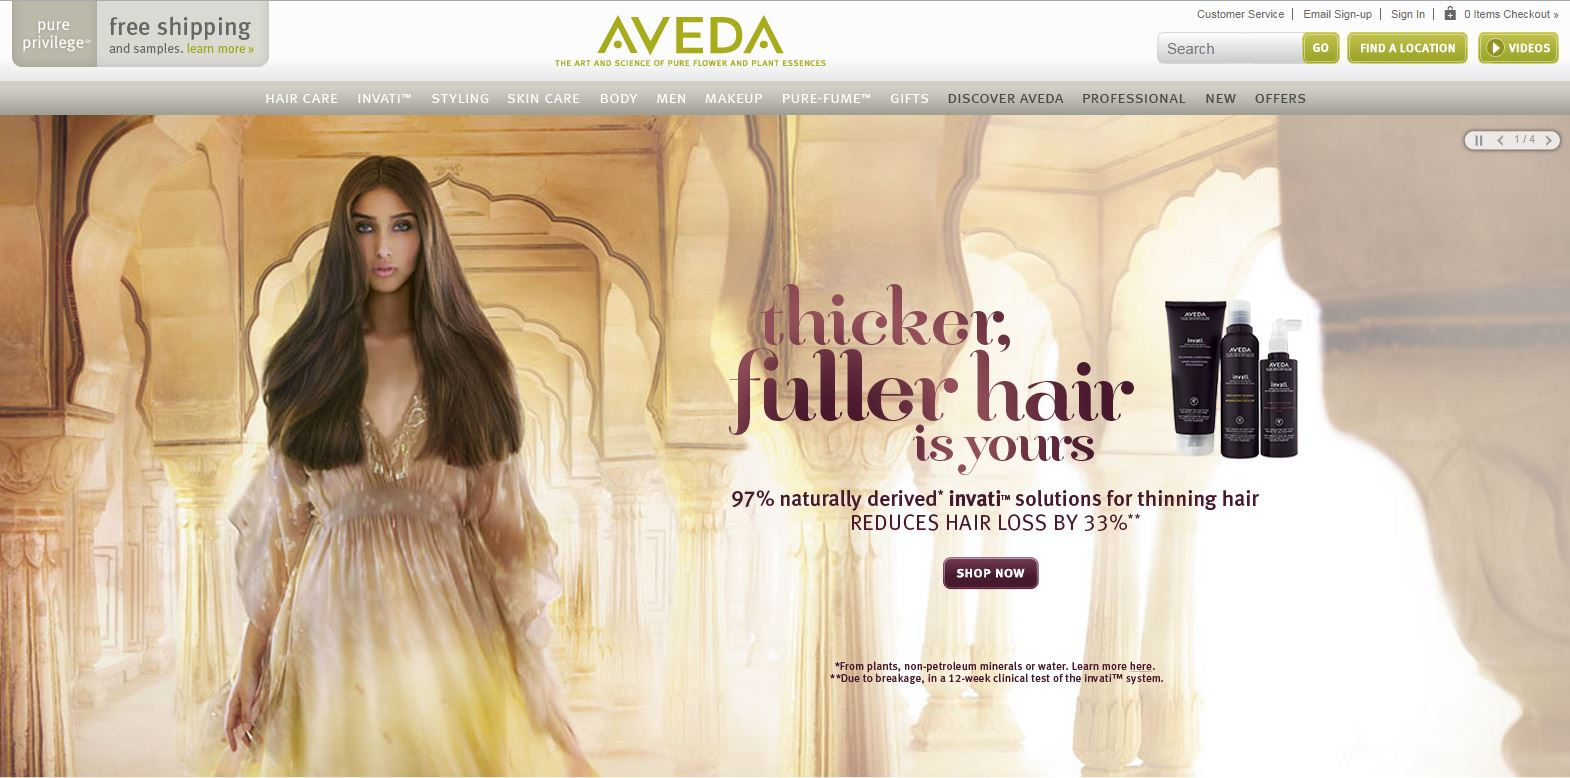 Aveda - Building Brand Recognition